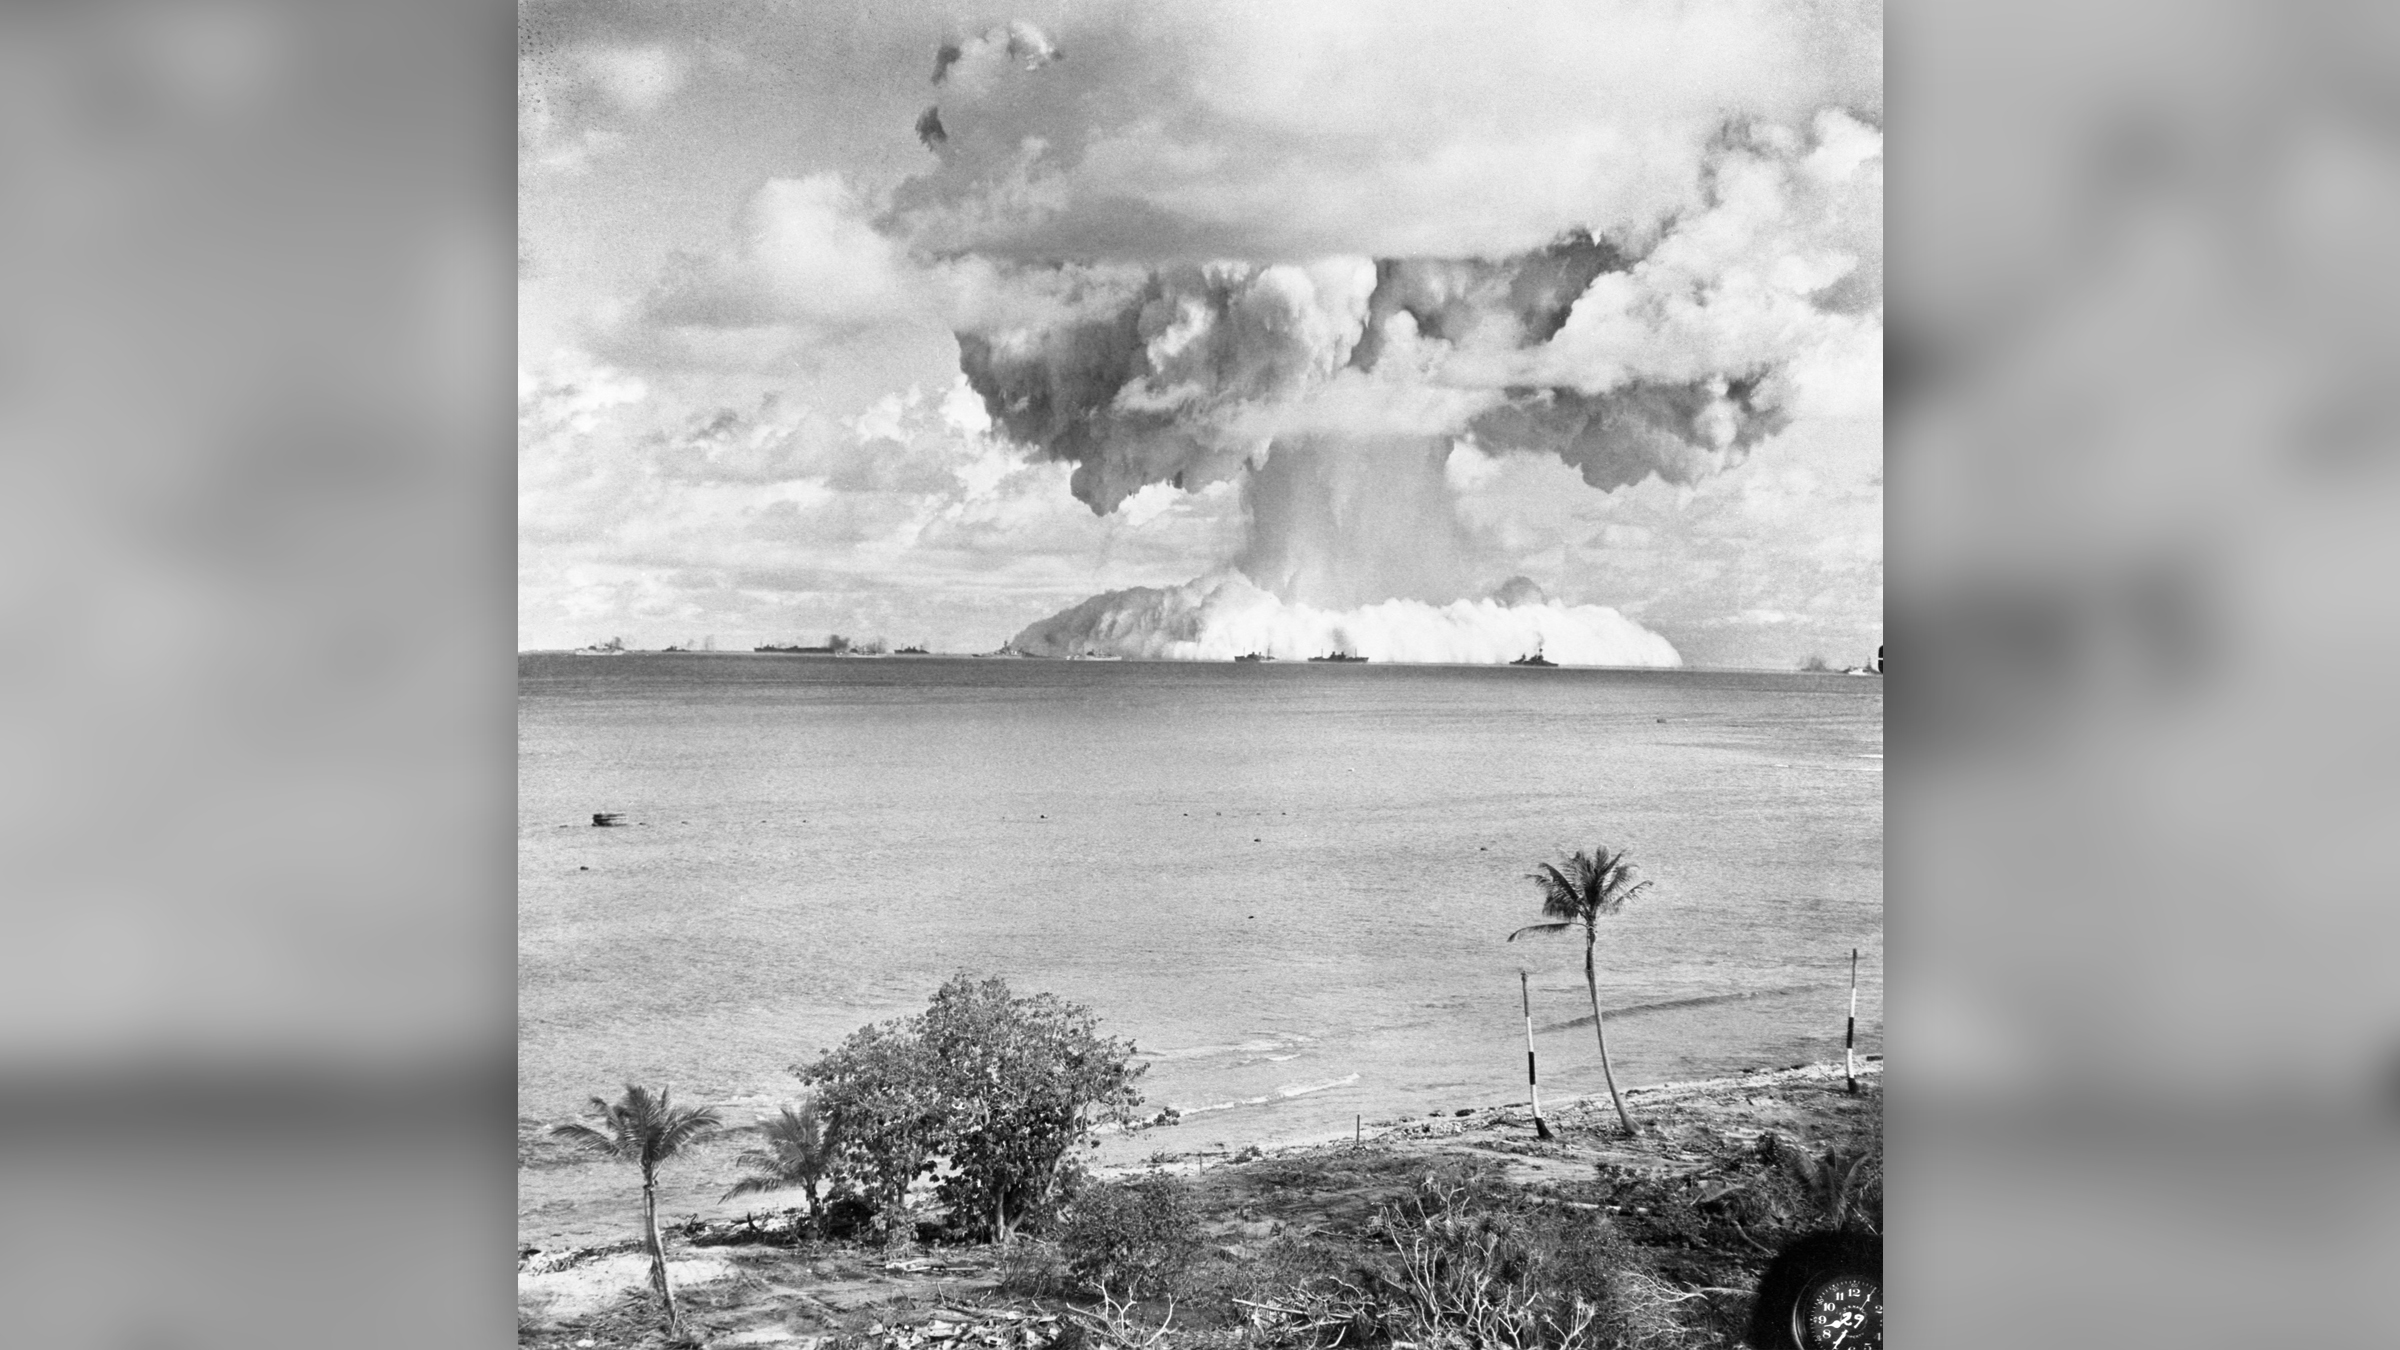 The Baker Day explosion at Bikini Atoll in the Marshall Islands, as recorded by an automatically operated camera on a nearby island. Notice the mushroom cloud forming immediately after the explosion.